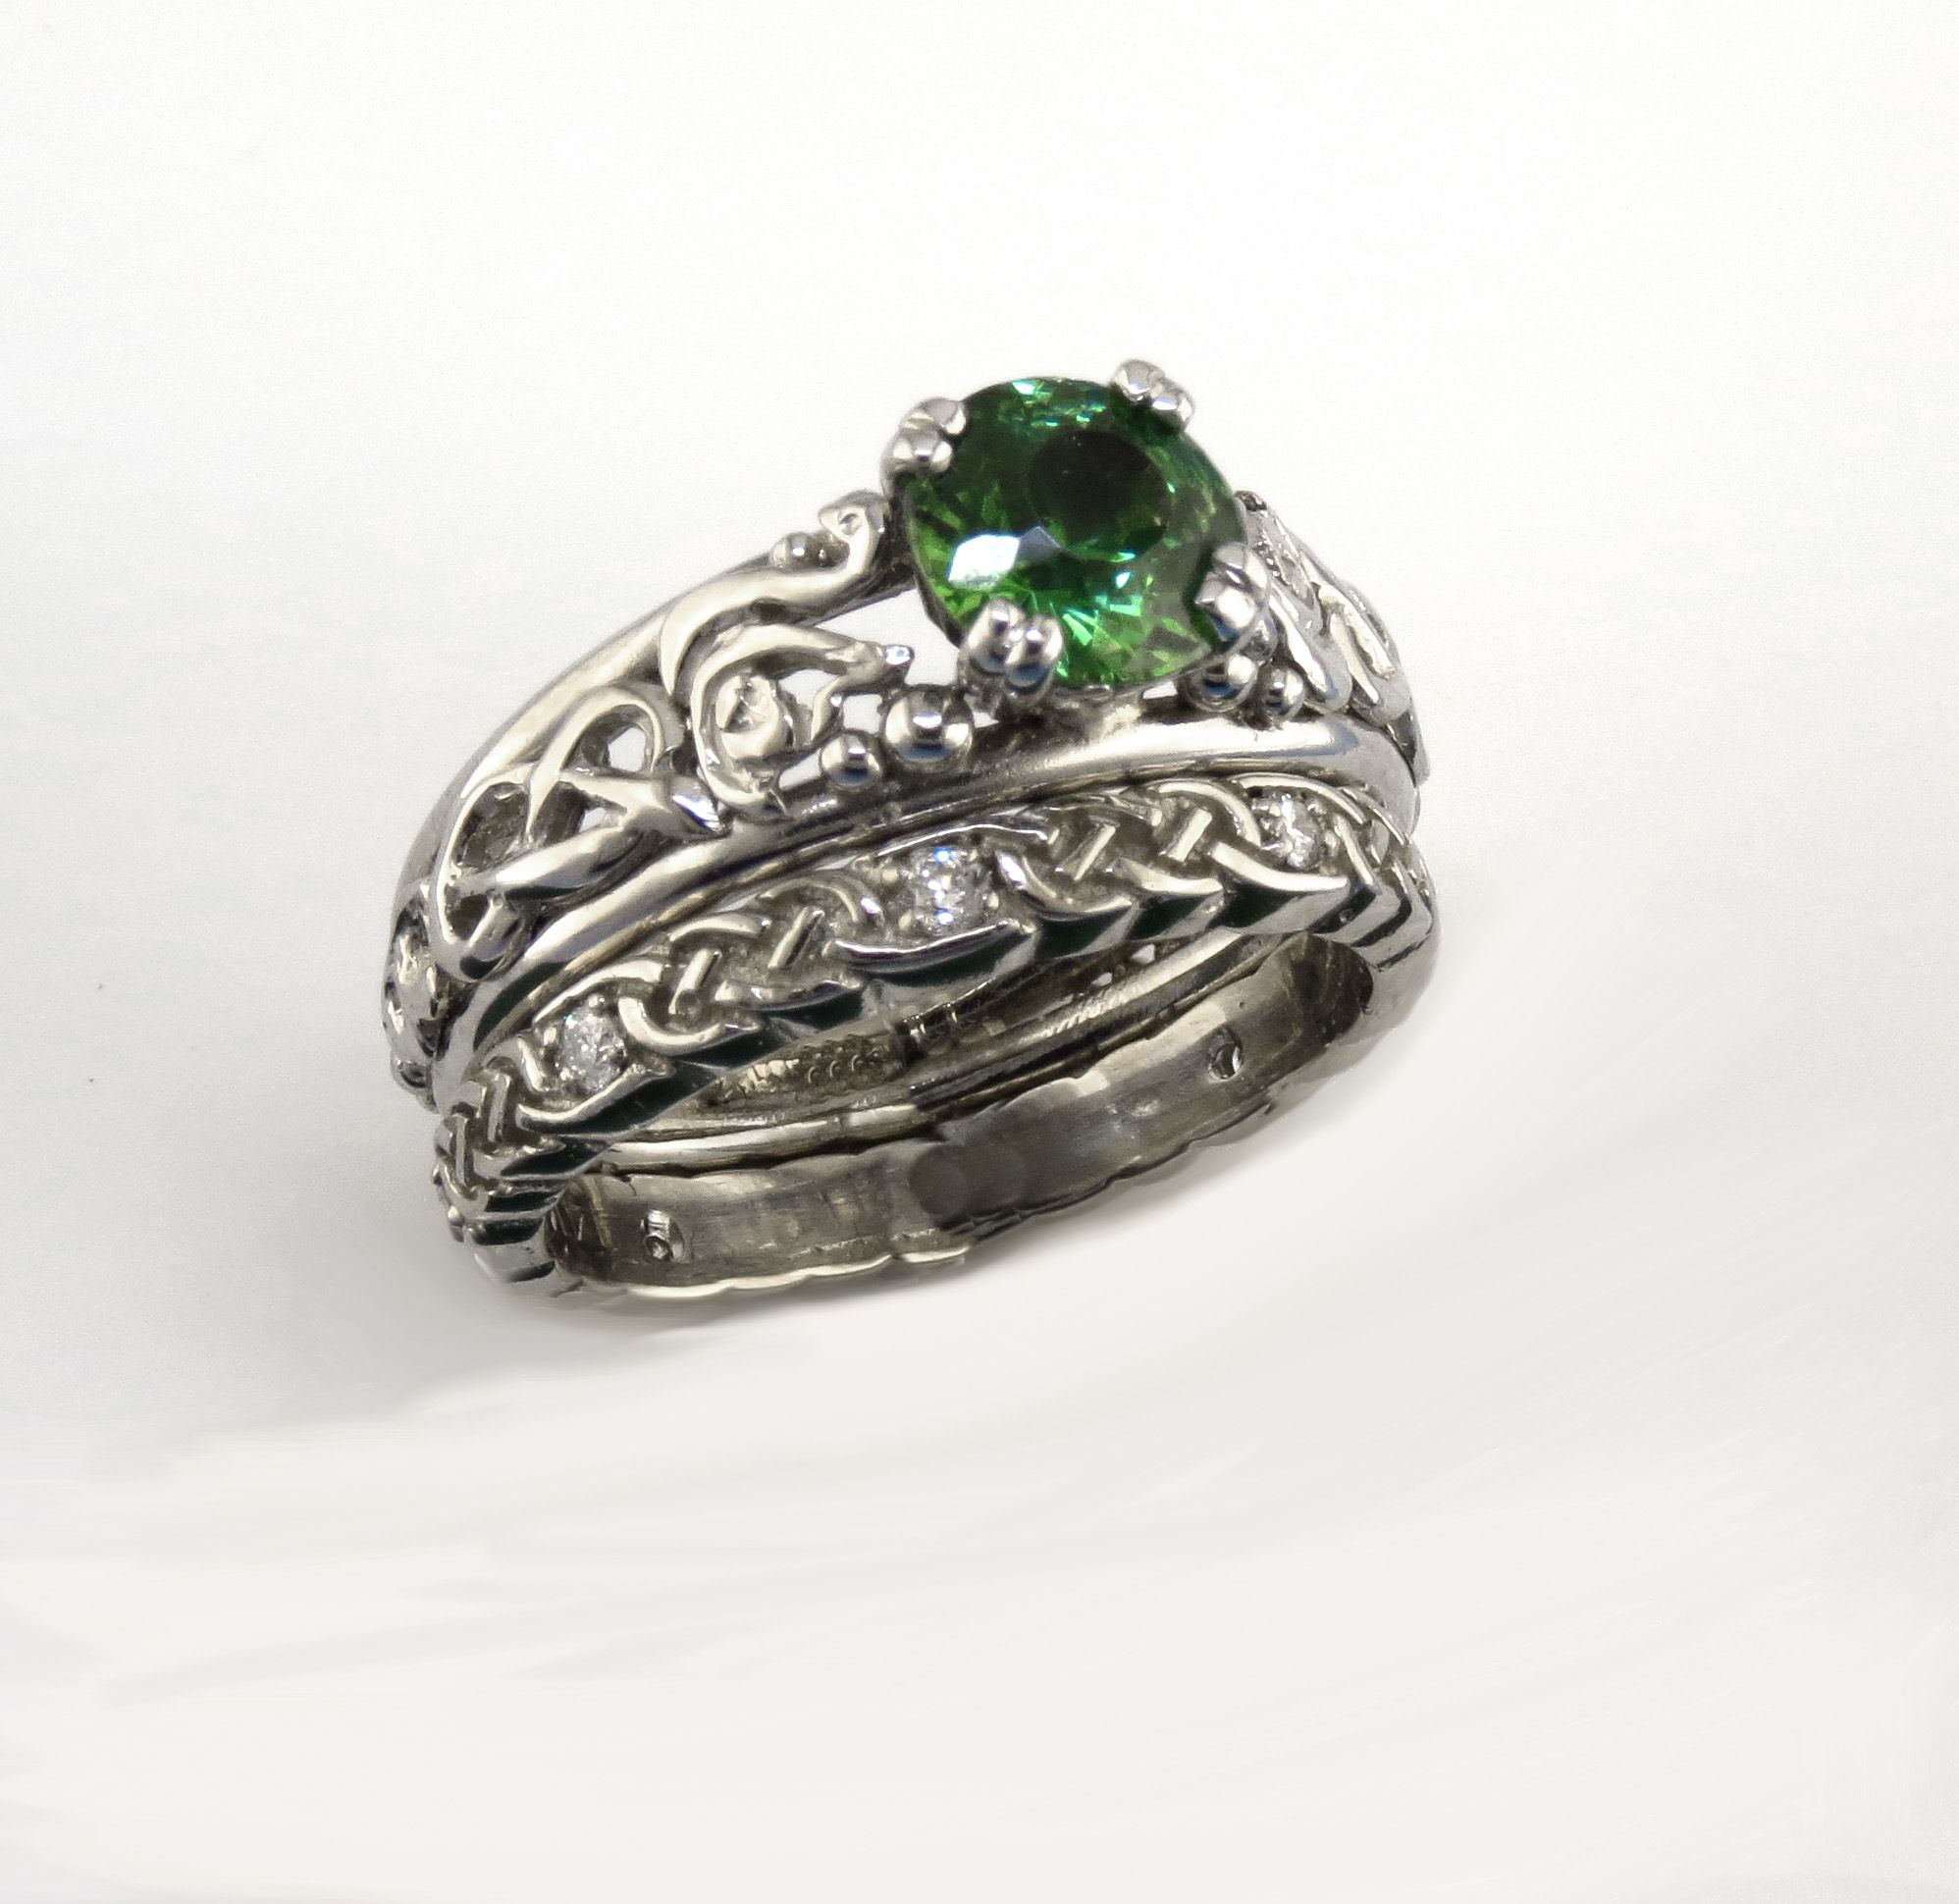 A stunning custom Wedding set in 14K White gold with hand carved